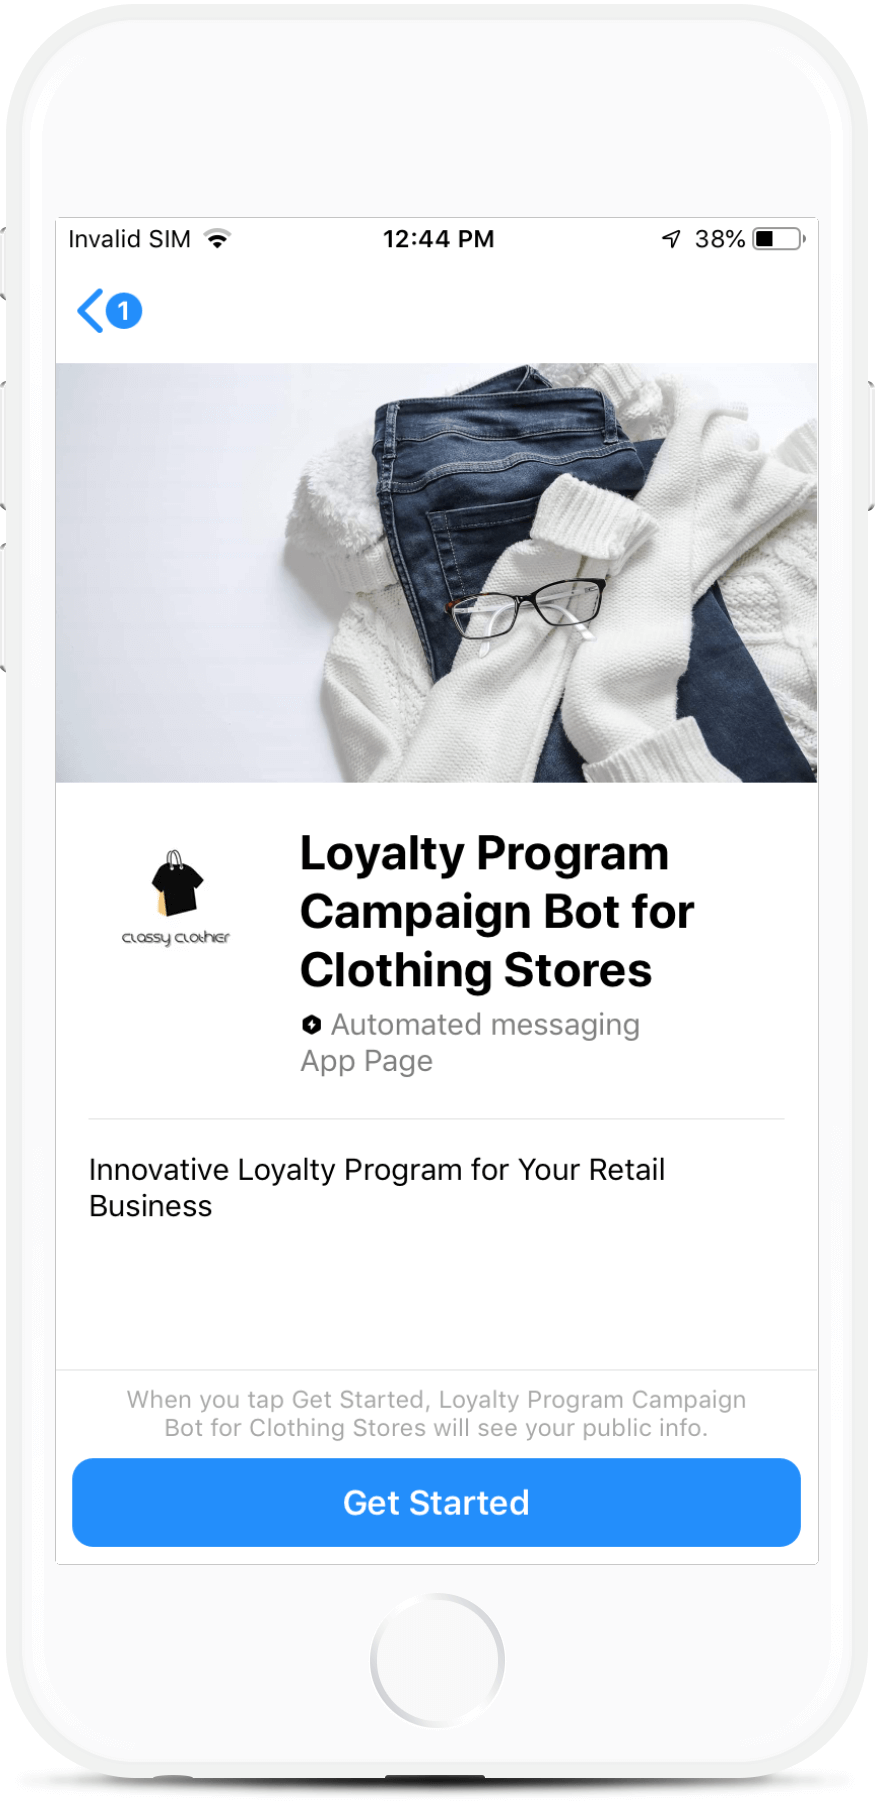 Loyalty Rewards Program Campaign Bot for Clothing Stores